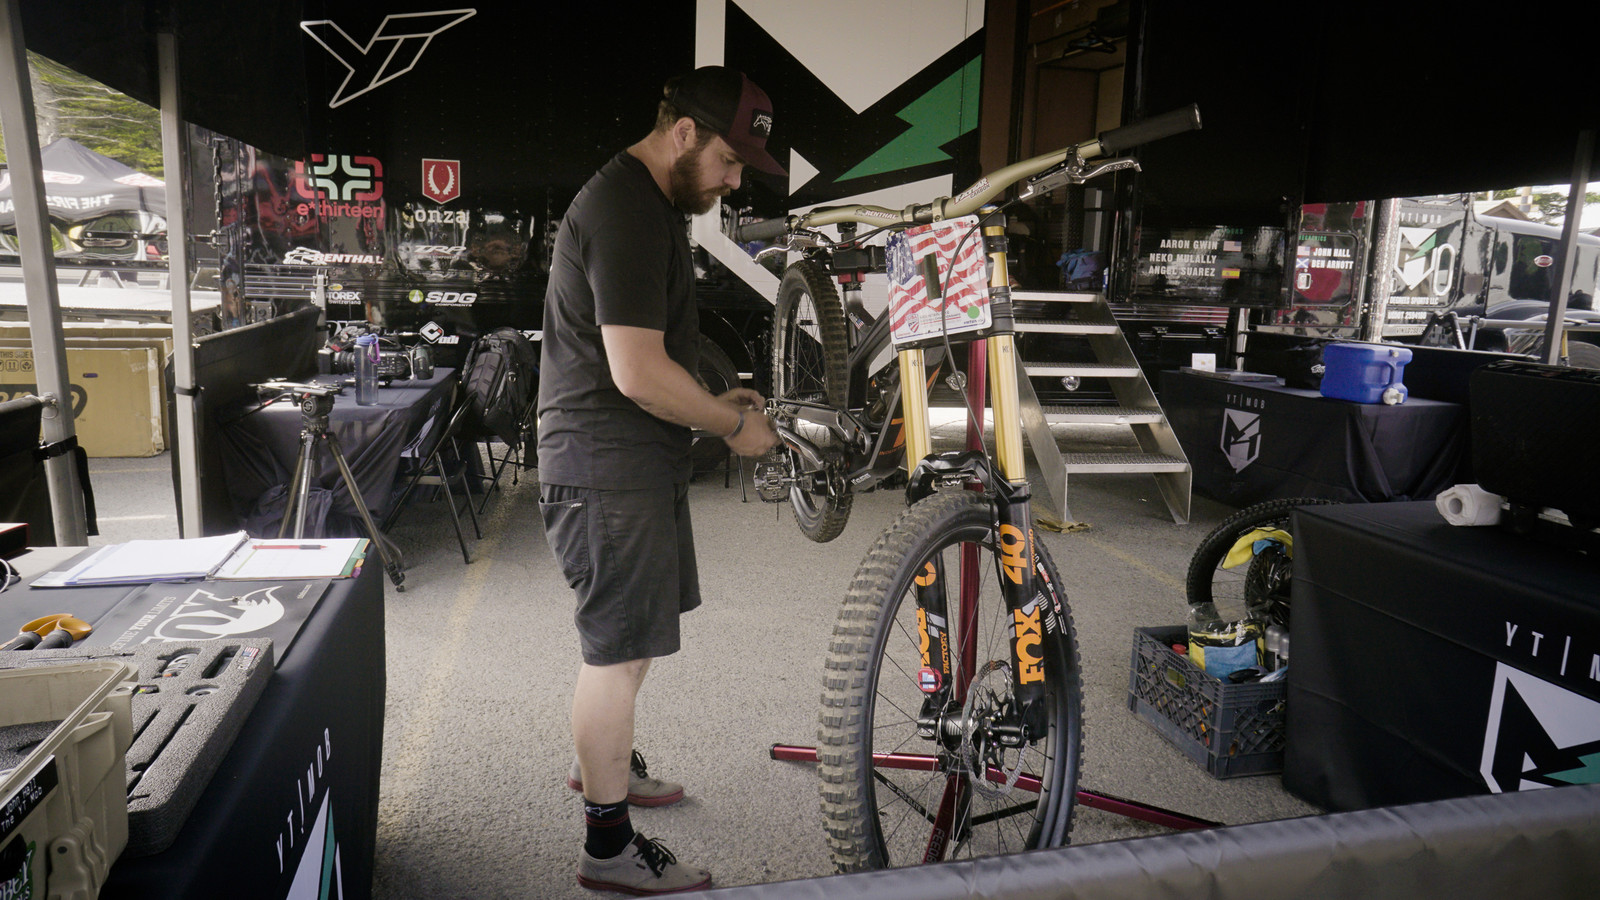 John Hall doing some bike whispering to Gwin's YT know that the rocks can't hurt it today.